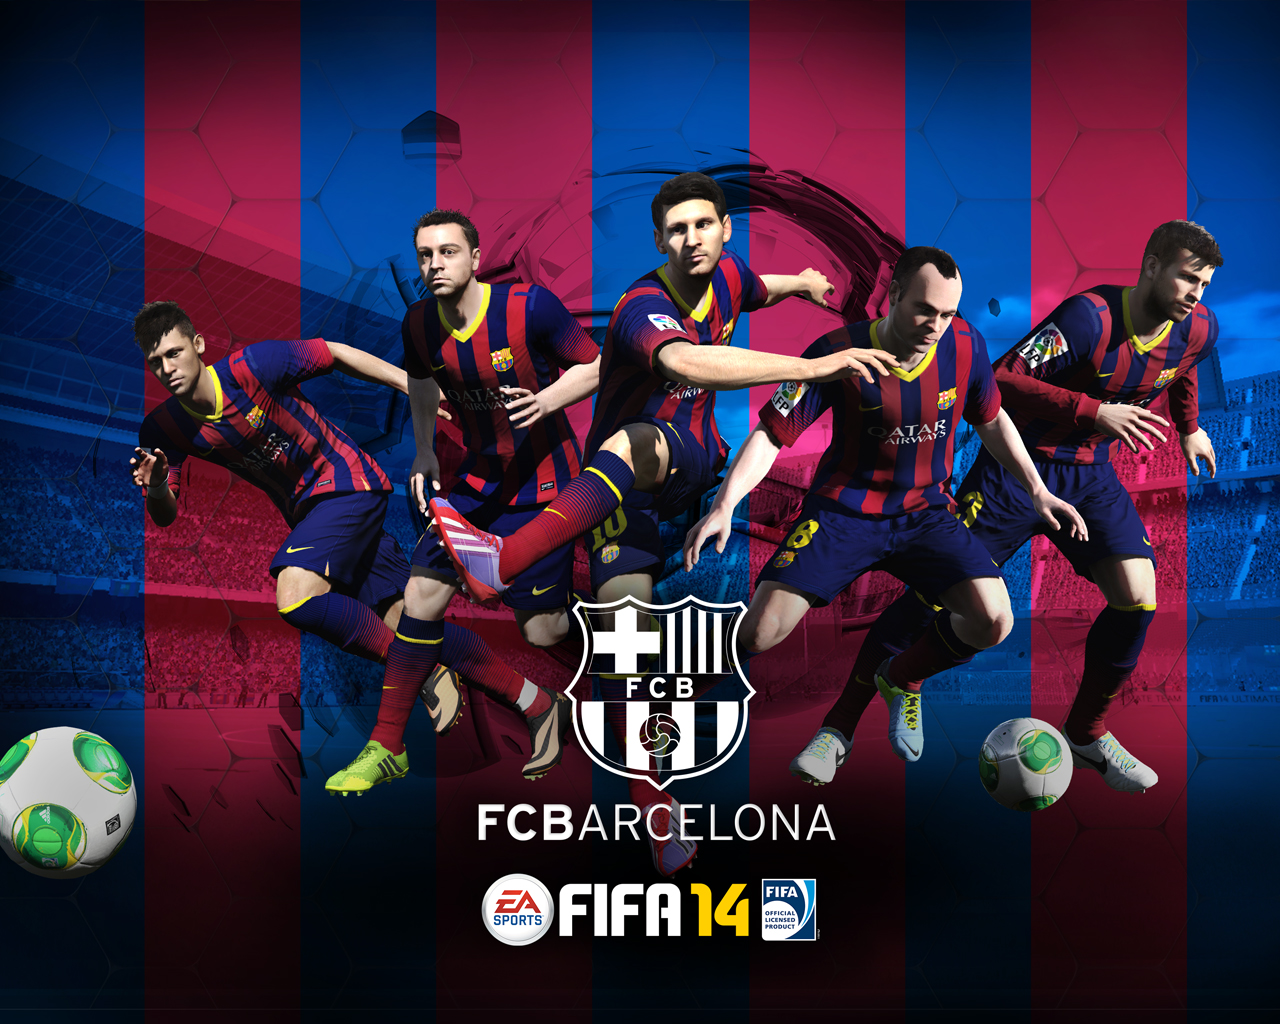 FIFA 14 Wallpapers - All Official FIFA 14 Wallpapers in a